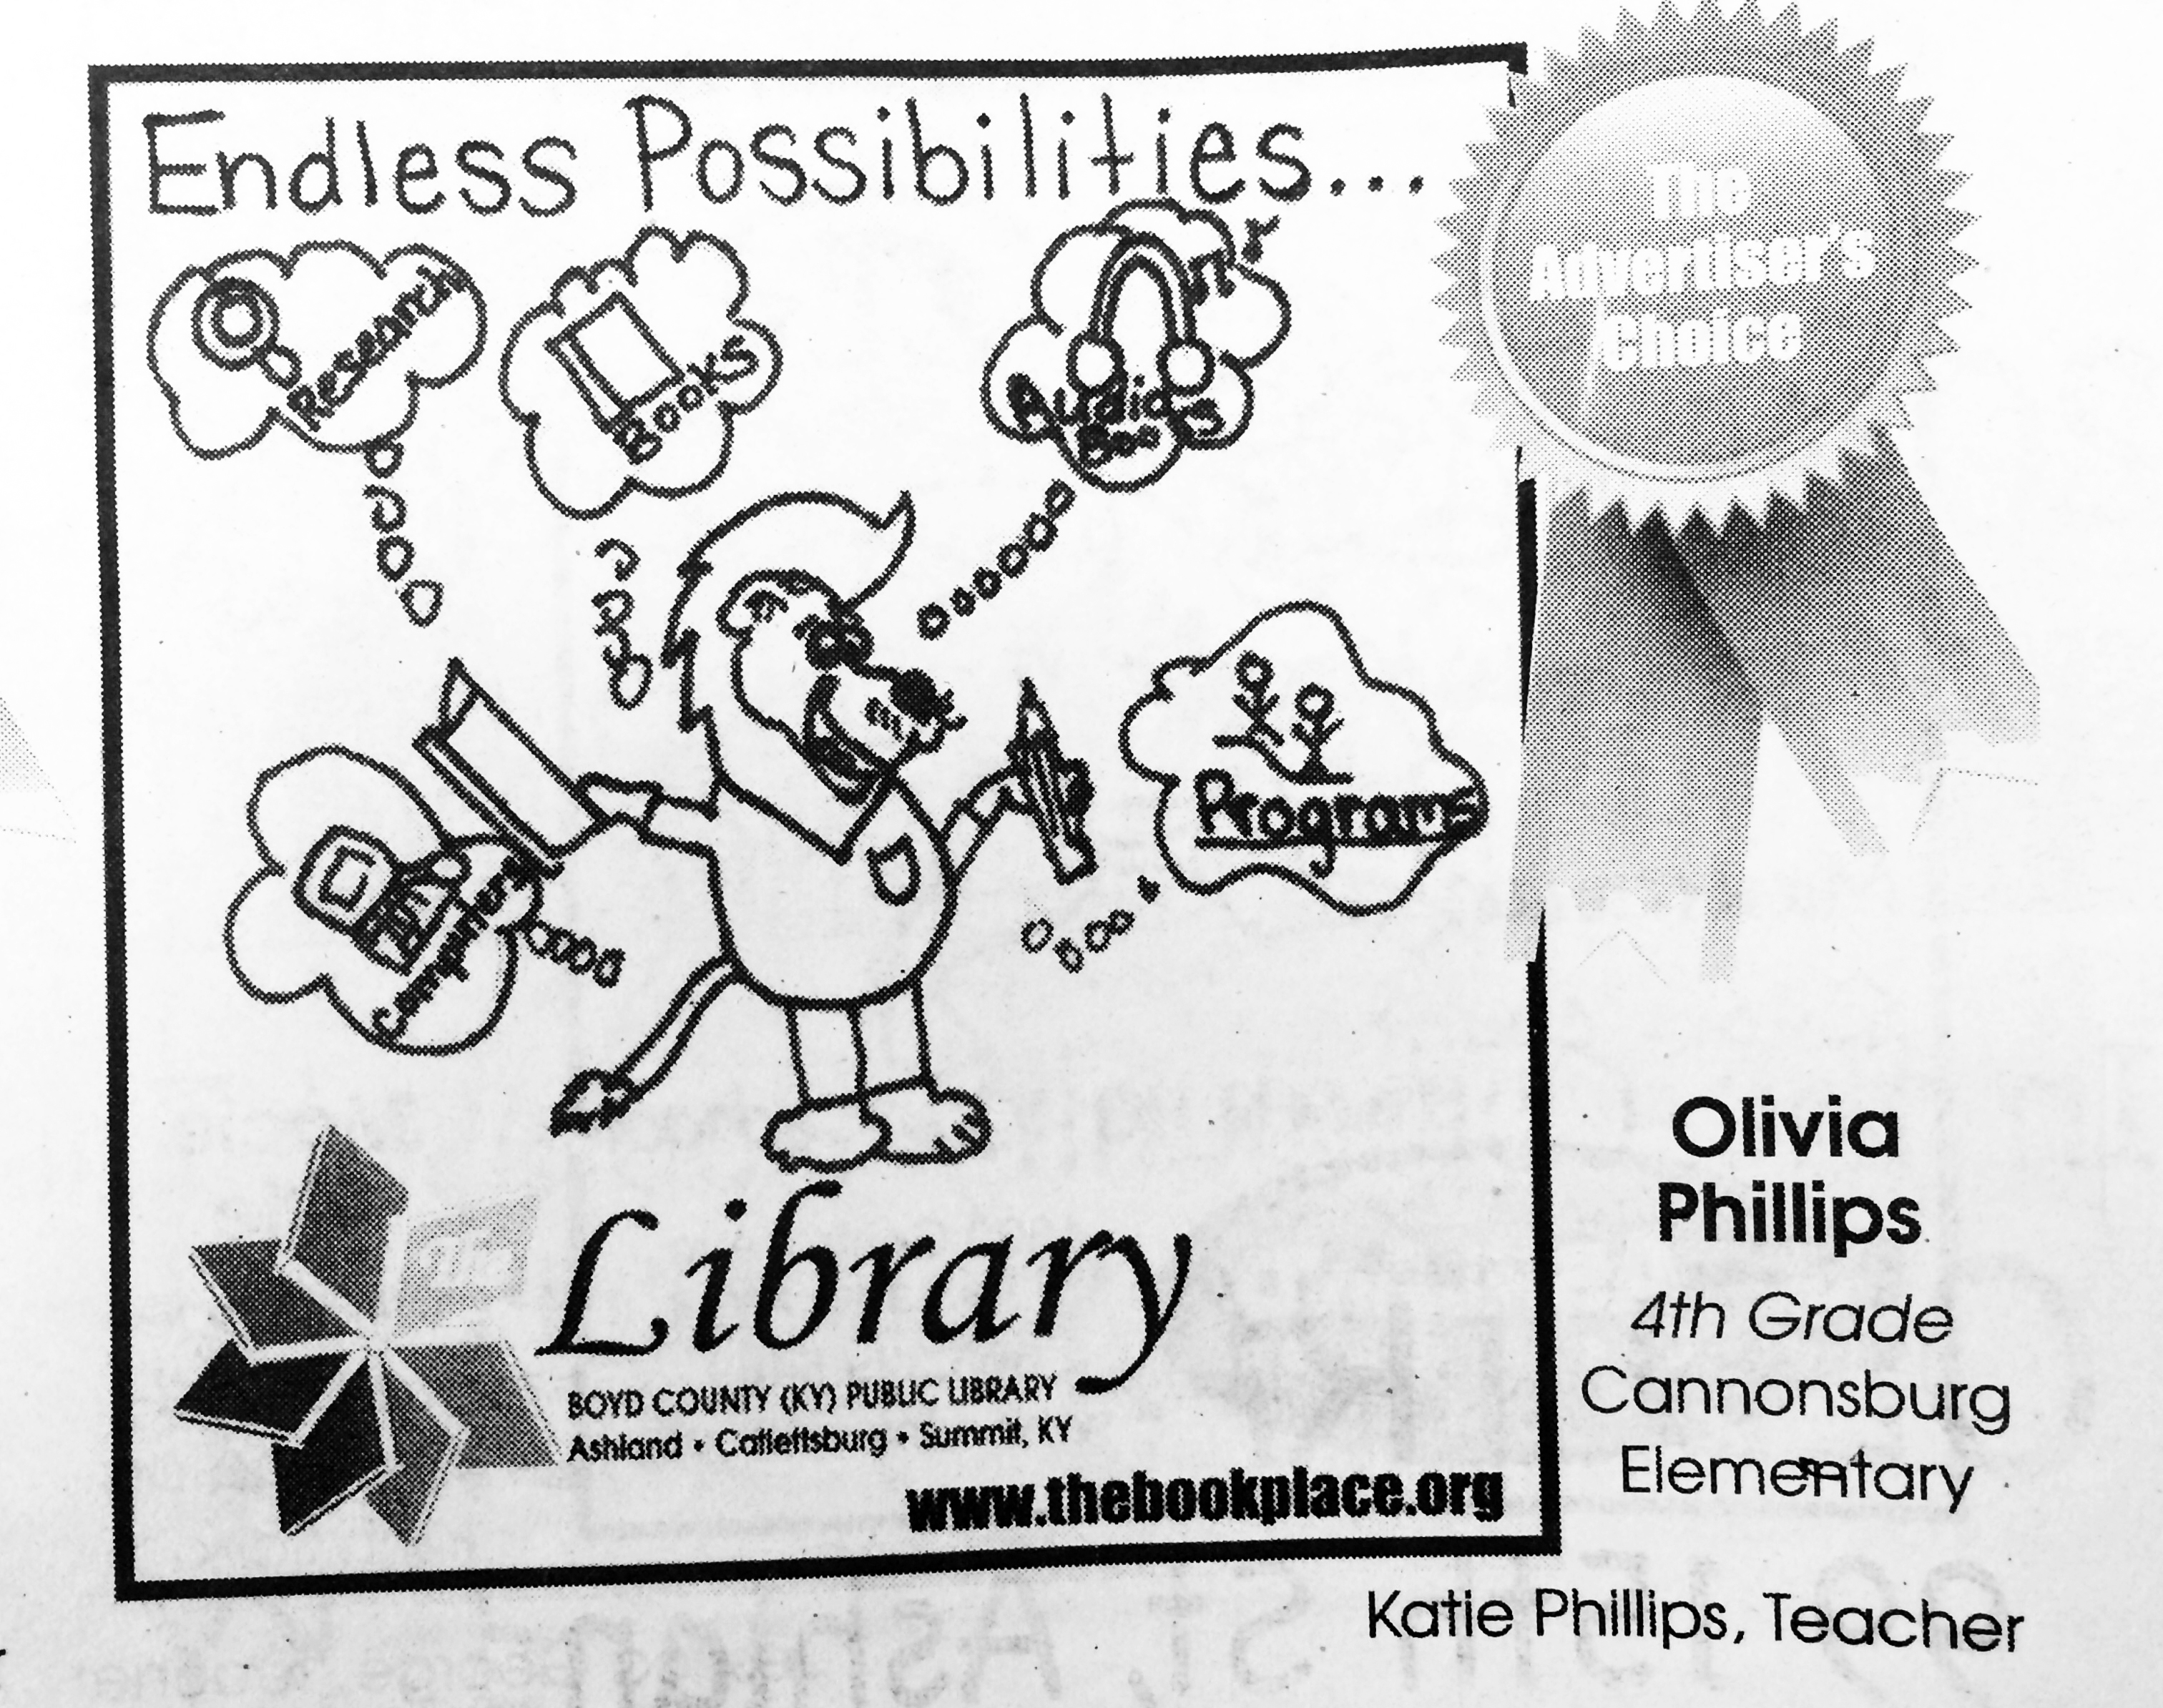 Olivia Phillips, a 4th grader at Cannonsburg Elementary, received an Advertiser's Choice Award.